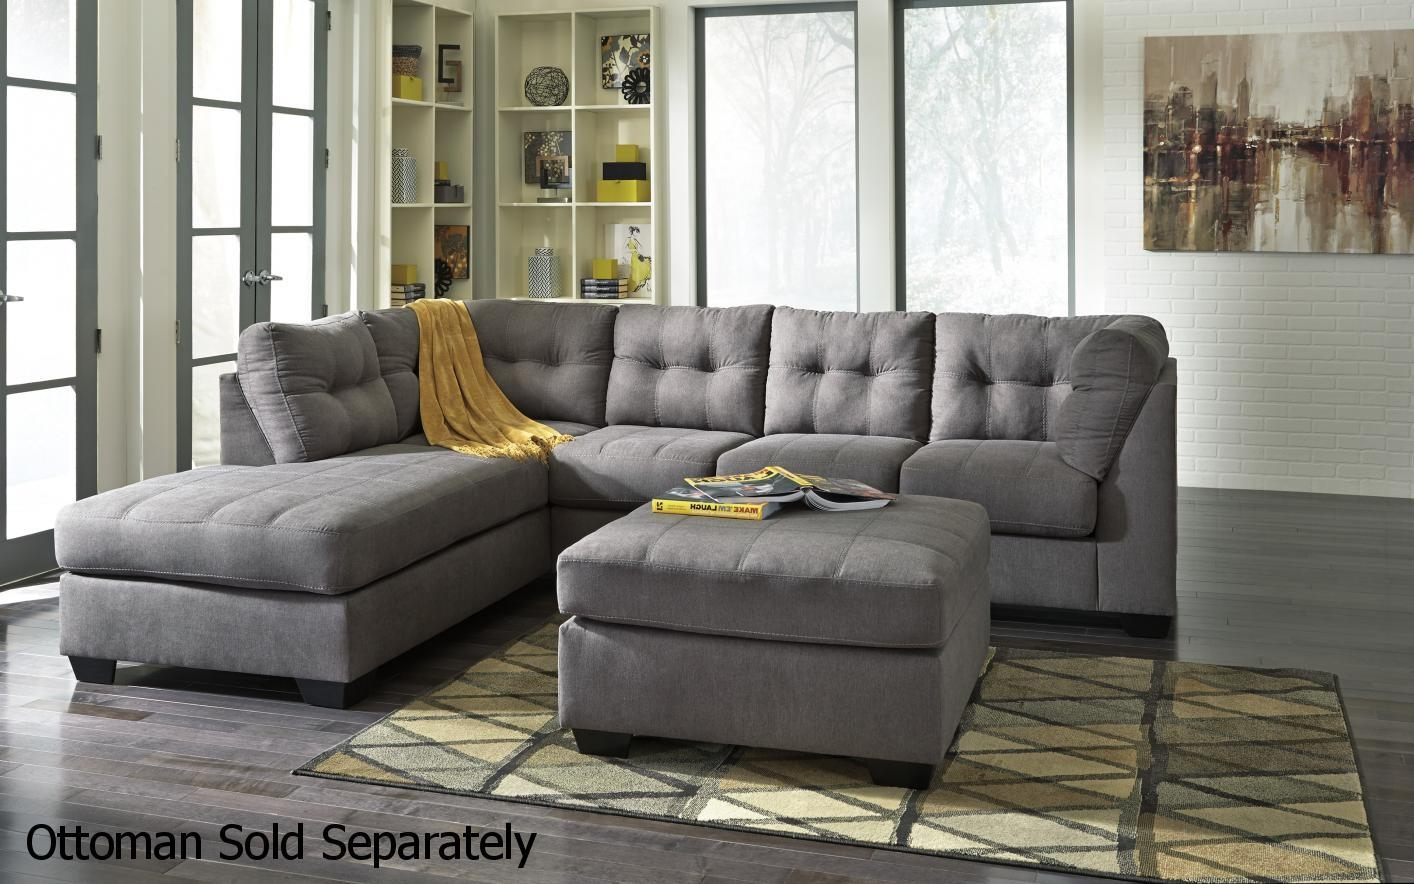 Grey Fabric Sectional Sofa u2013 Steal A Sofa Furniture Outlet Los Inside Sectional Sofas Los Angeles : sectional sofa los angeles - Sectionals, Sofas & Couches